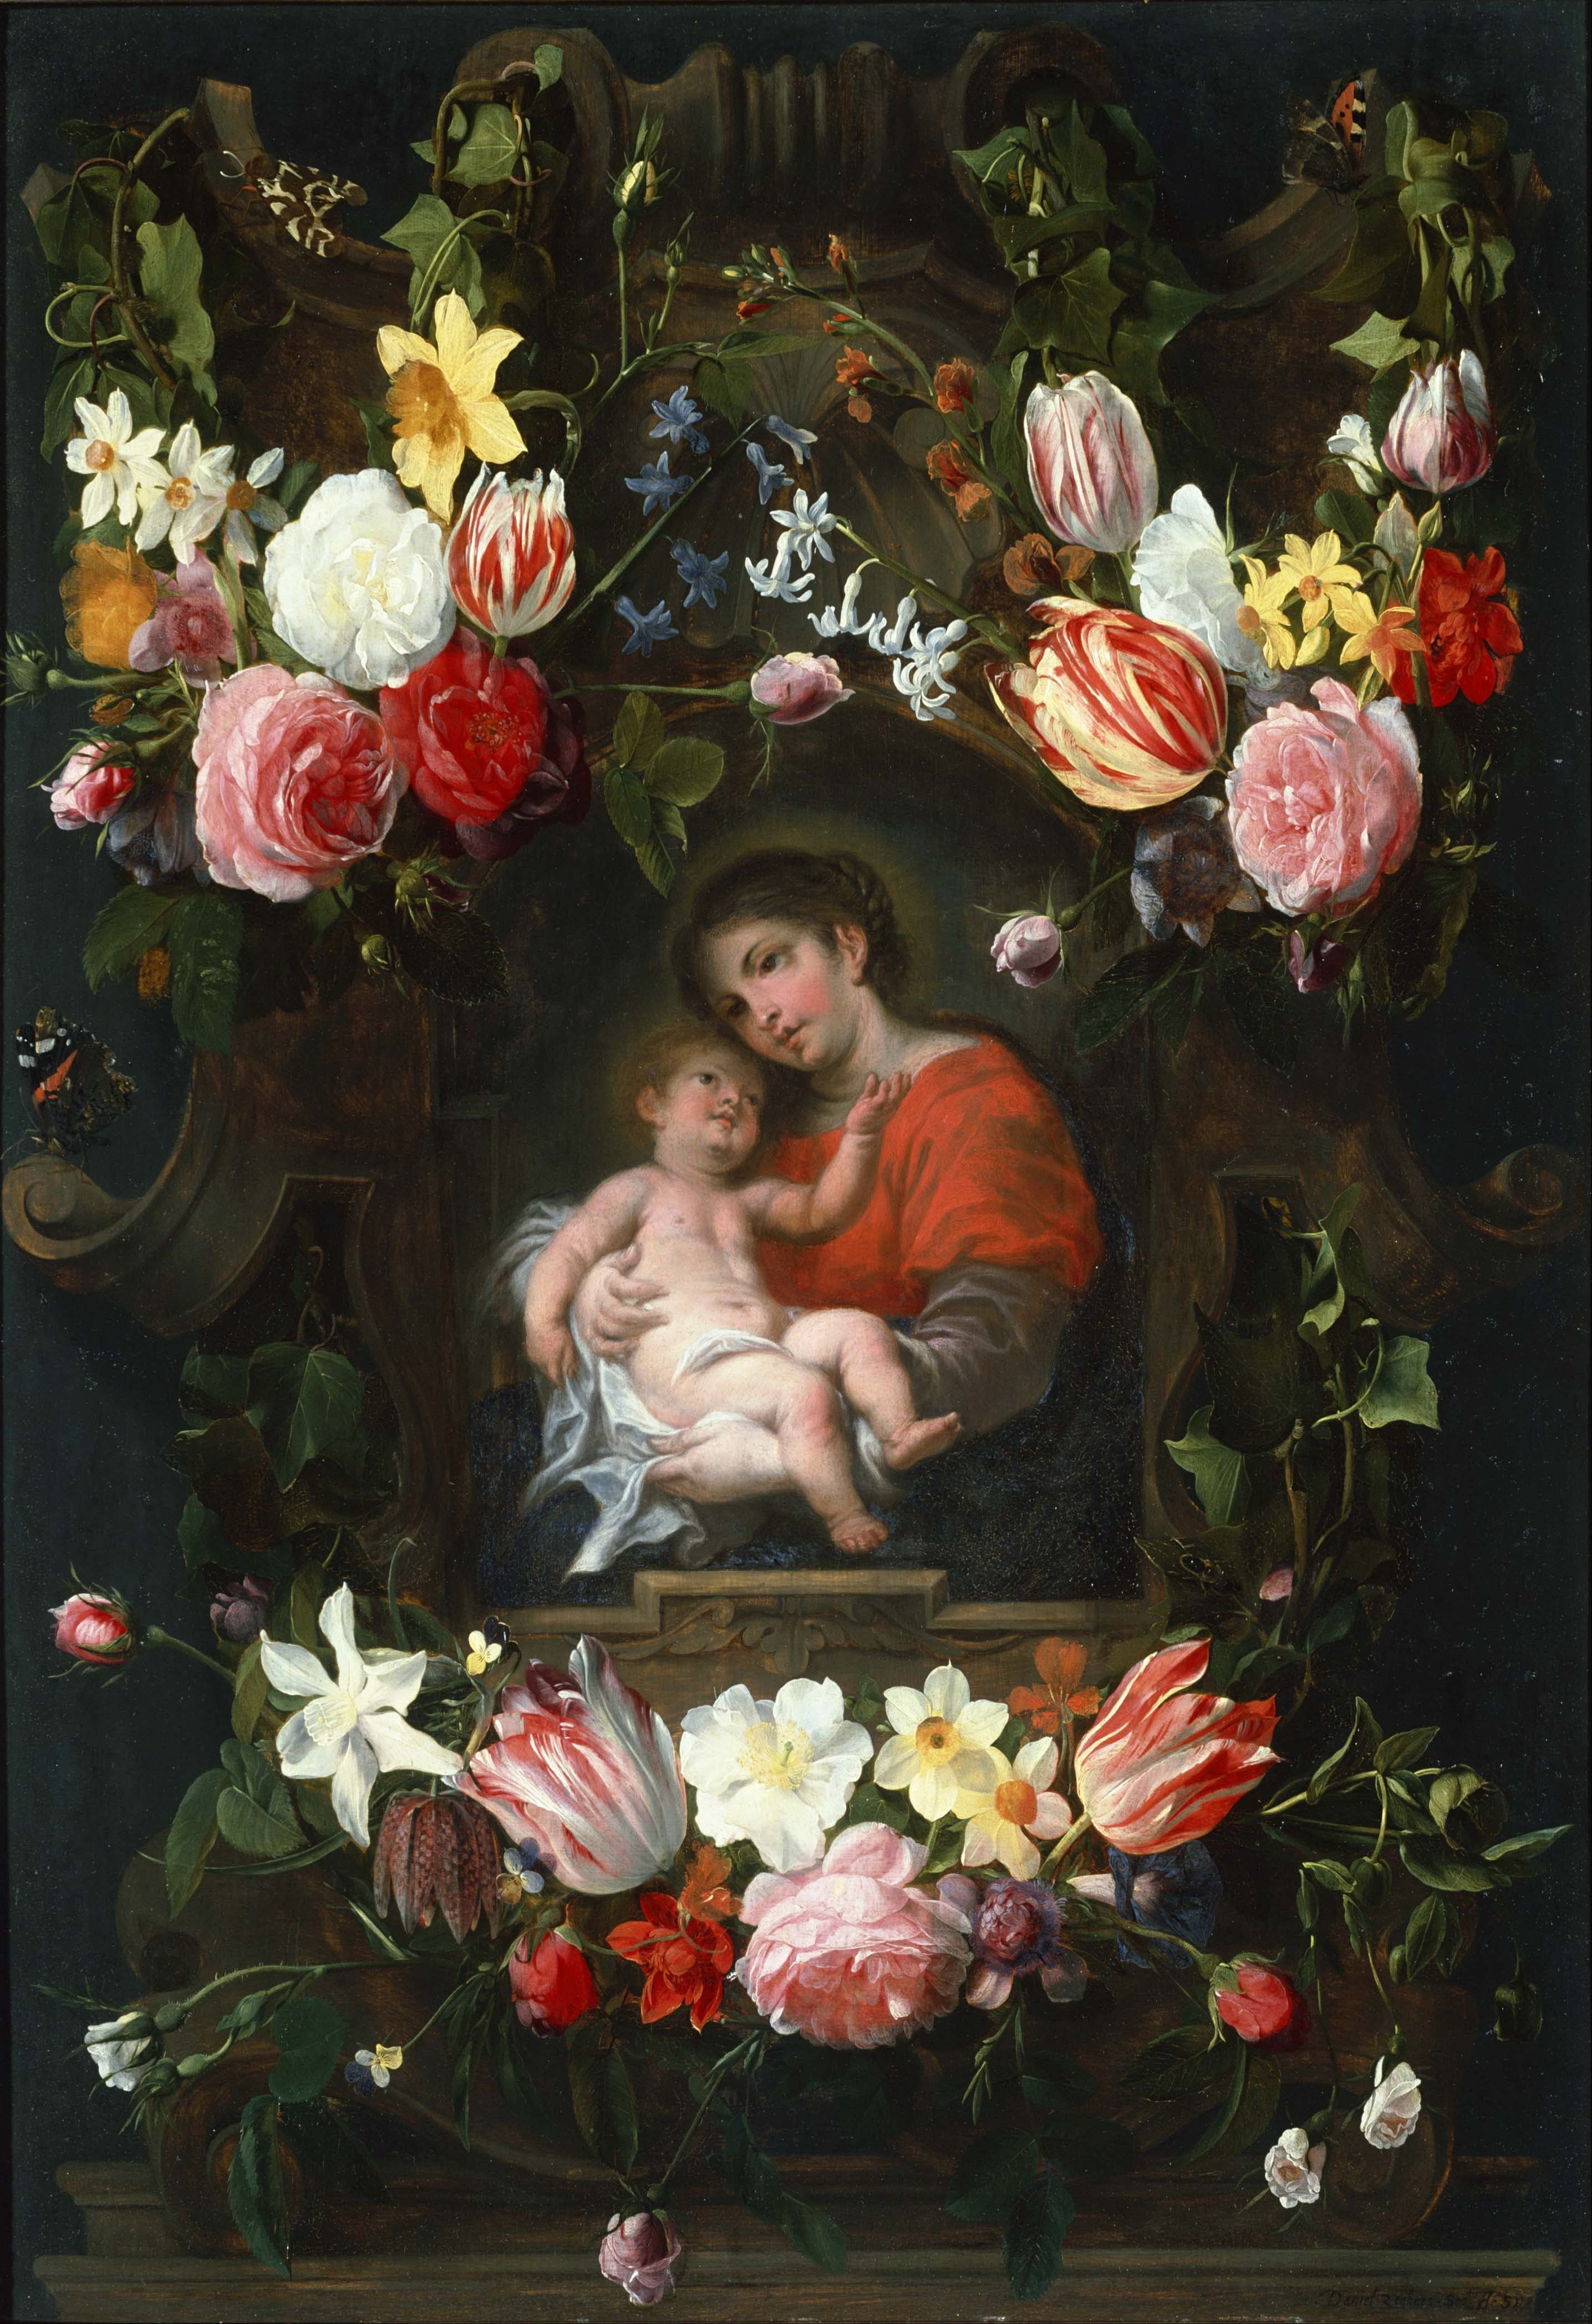 Dani l Seghers 1590–1661 — Garland of Flowers with Madonna and